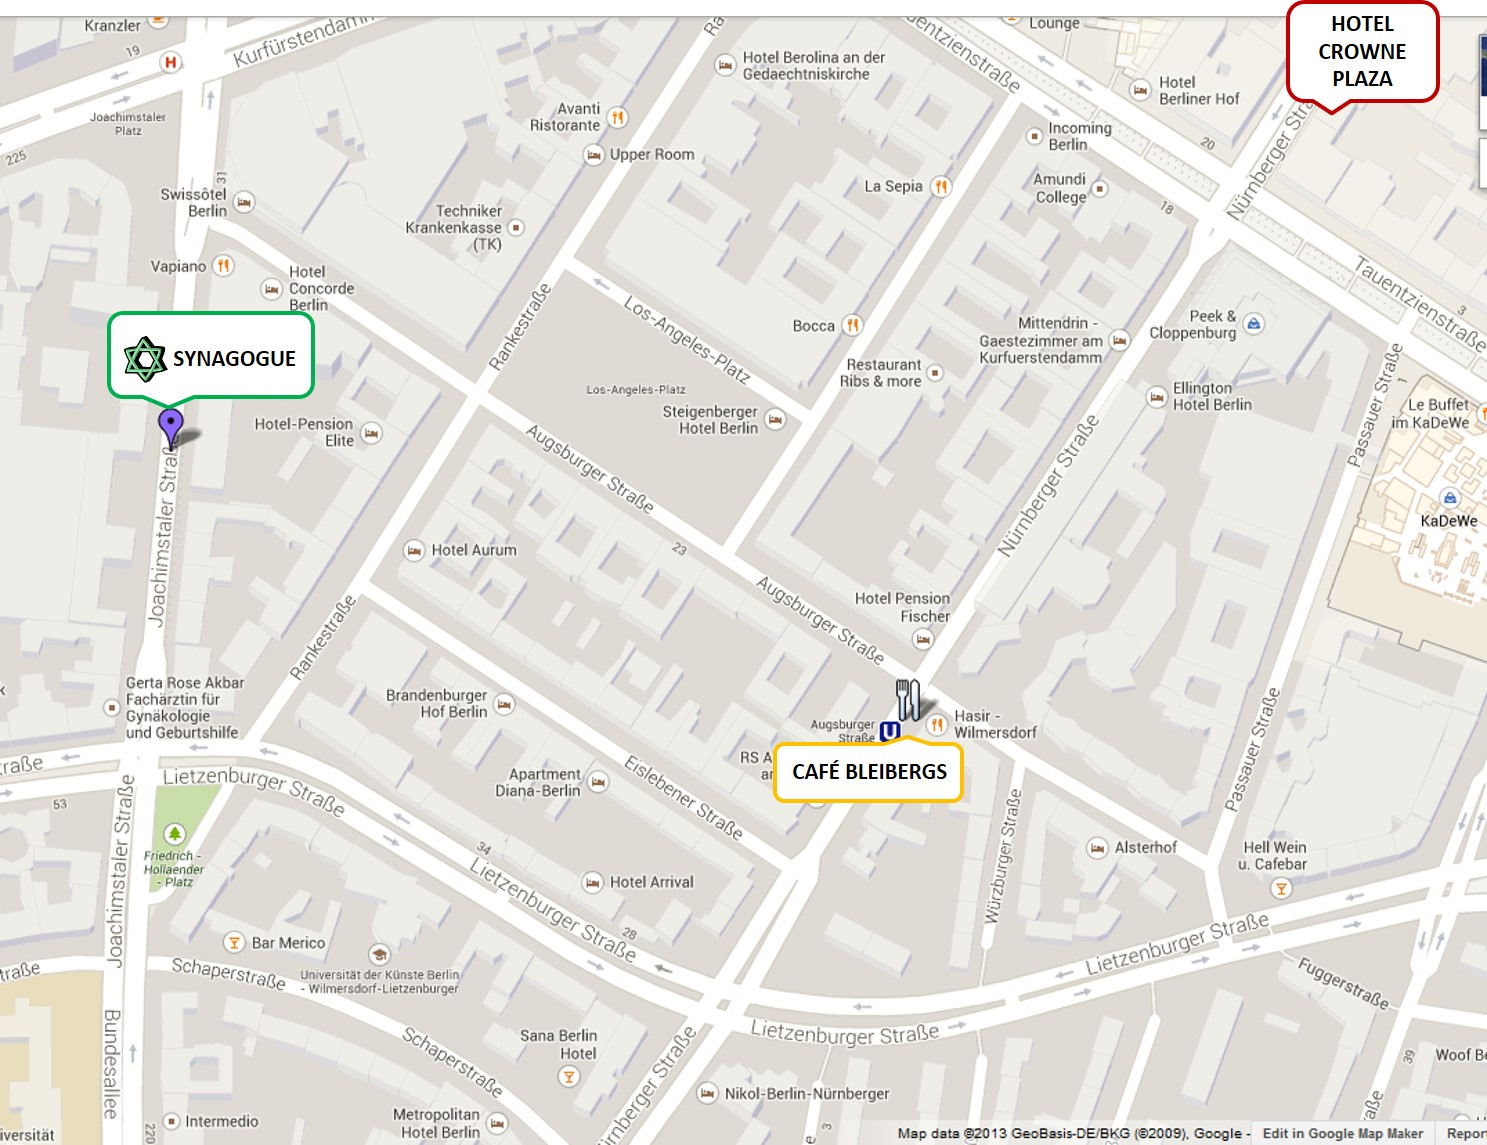 MAP OF CENTRAL ORTHODOX SYNAGOGUE BERLIN AREA